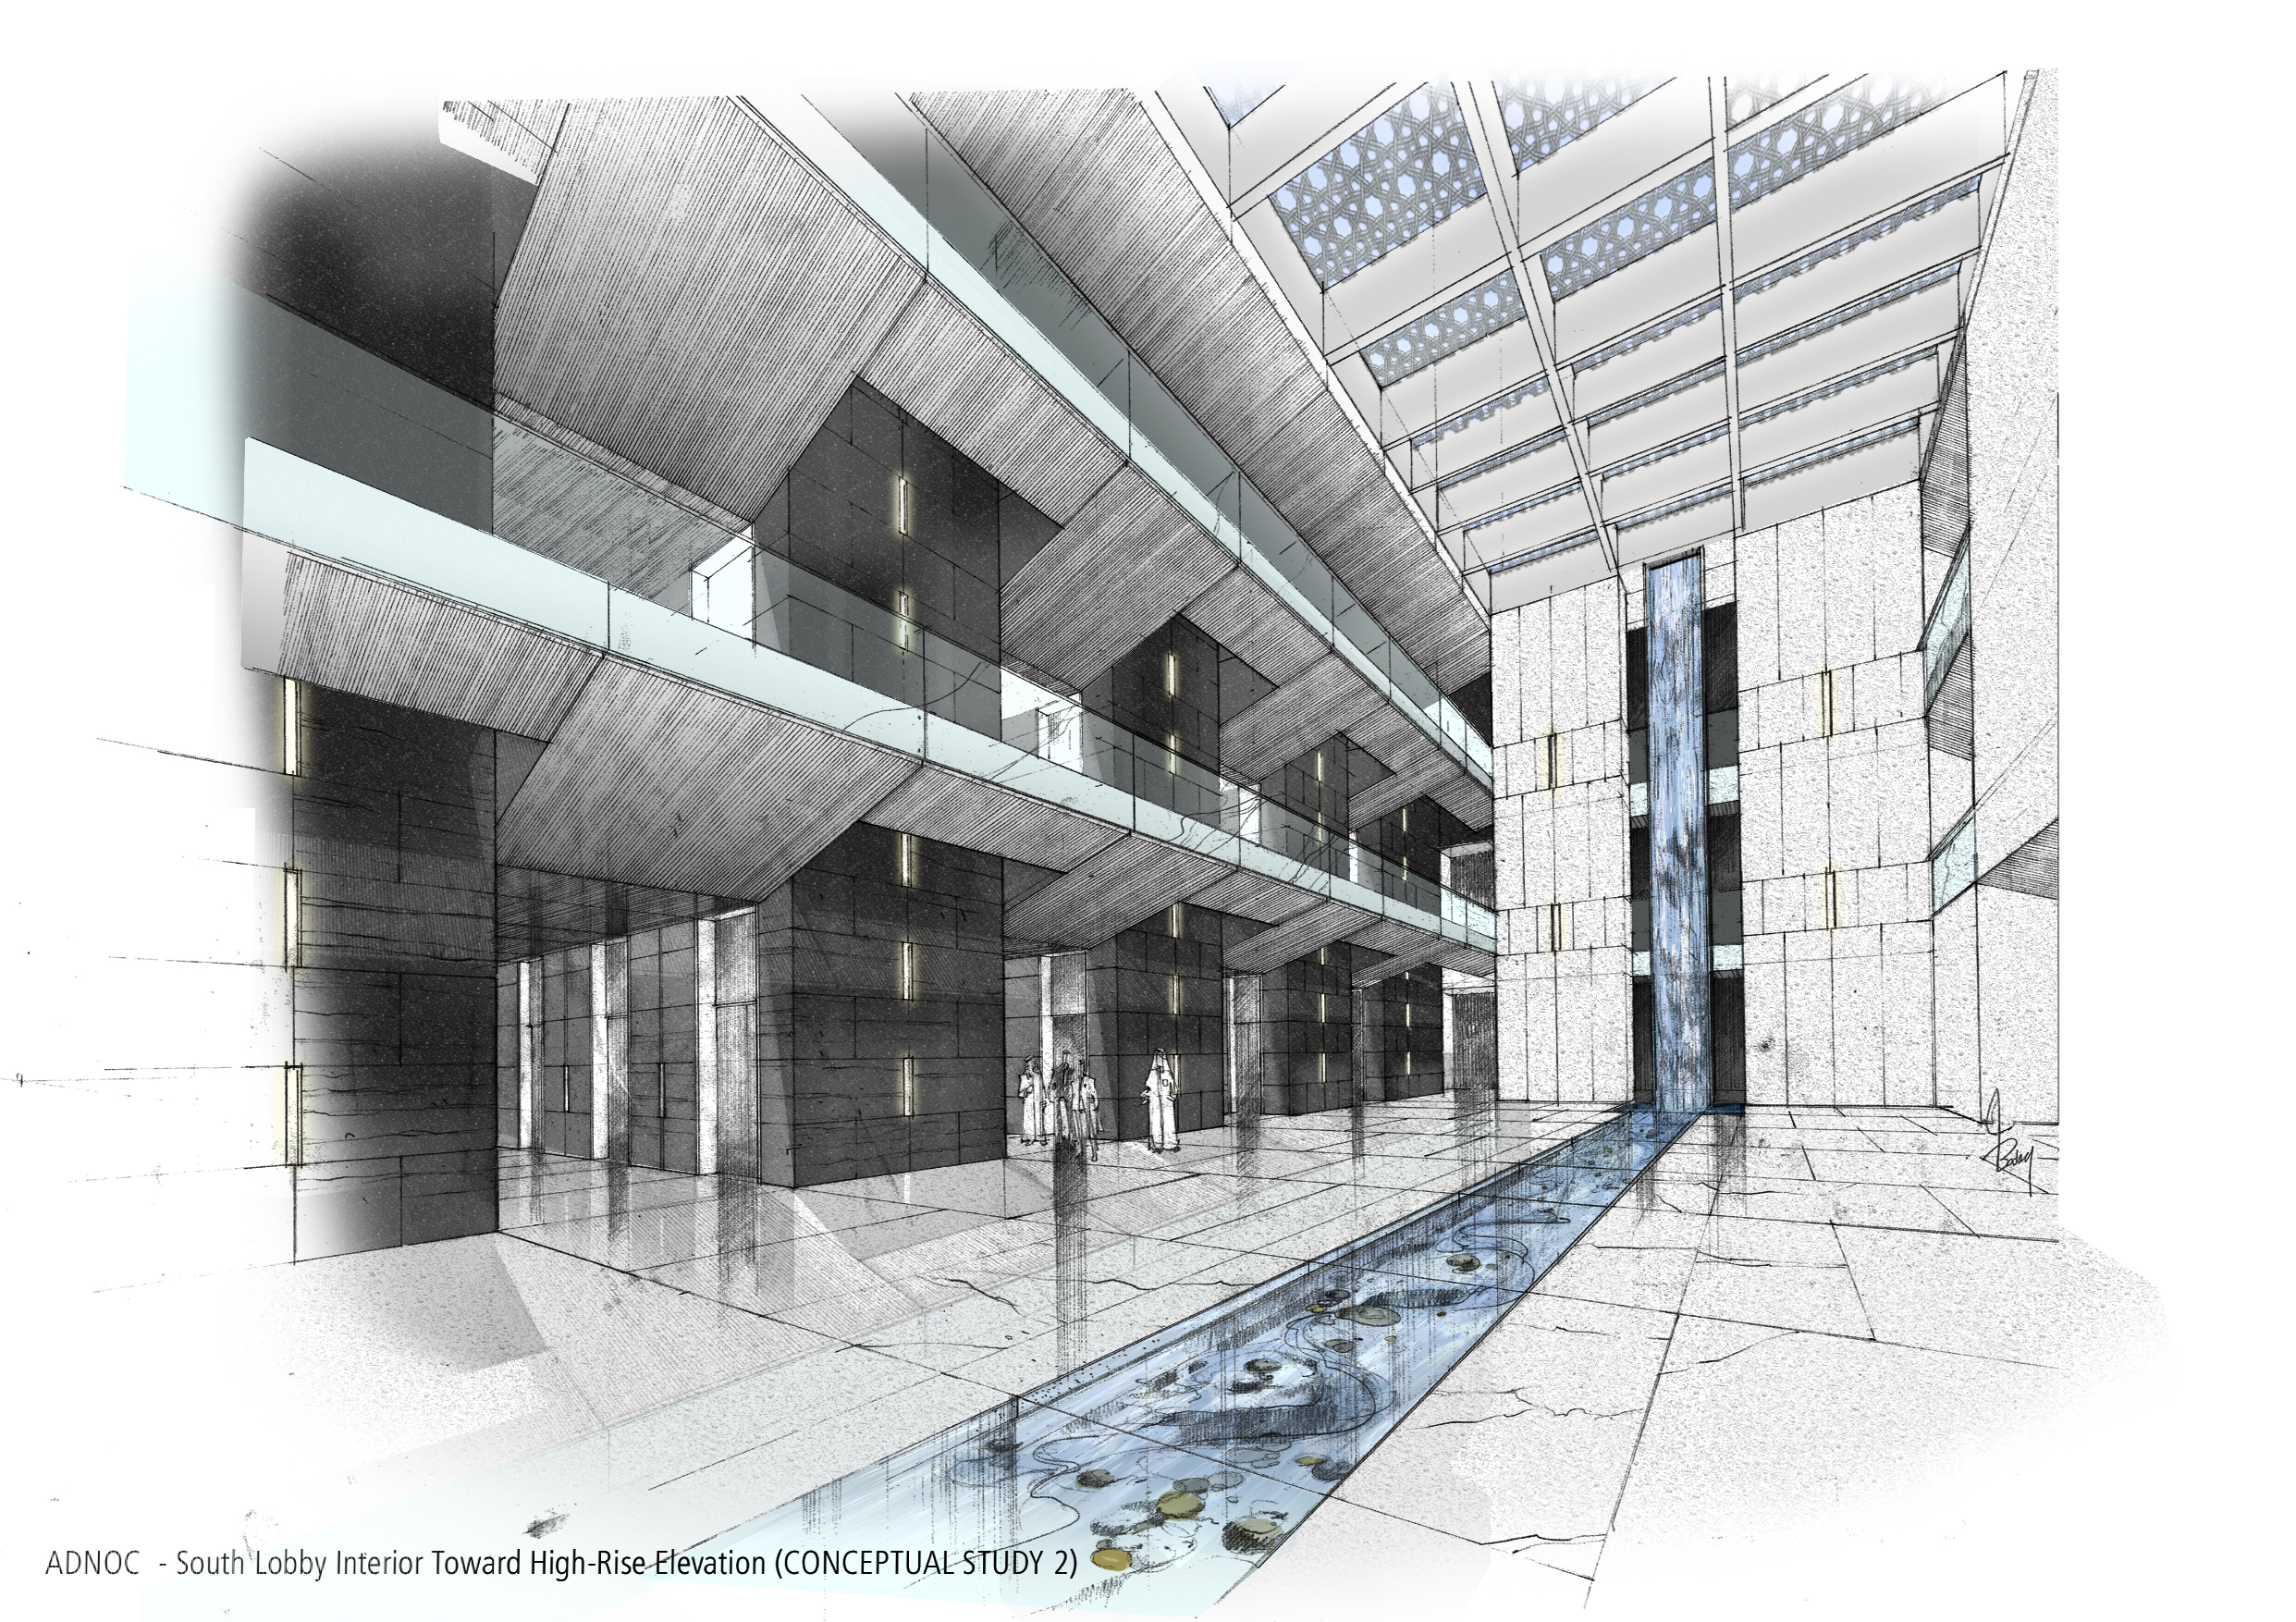 Architectural Sketches By Collin Byrnes At Coroflot